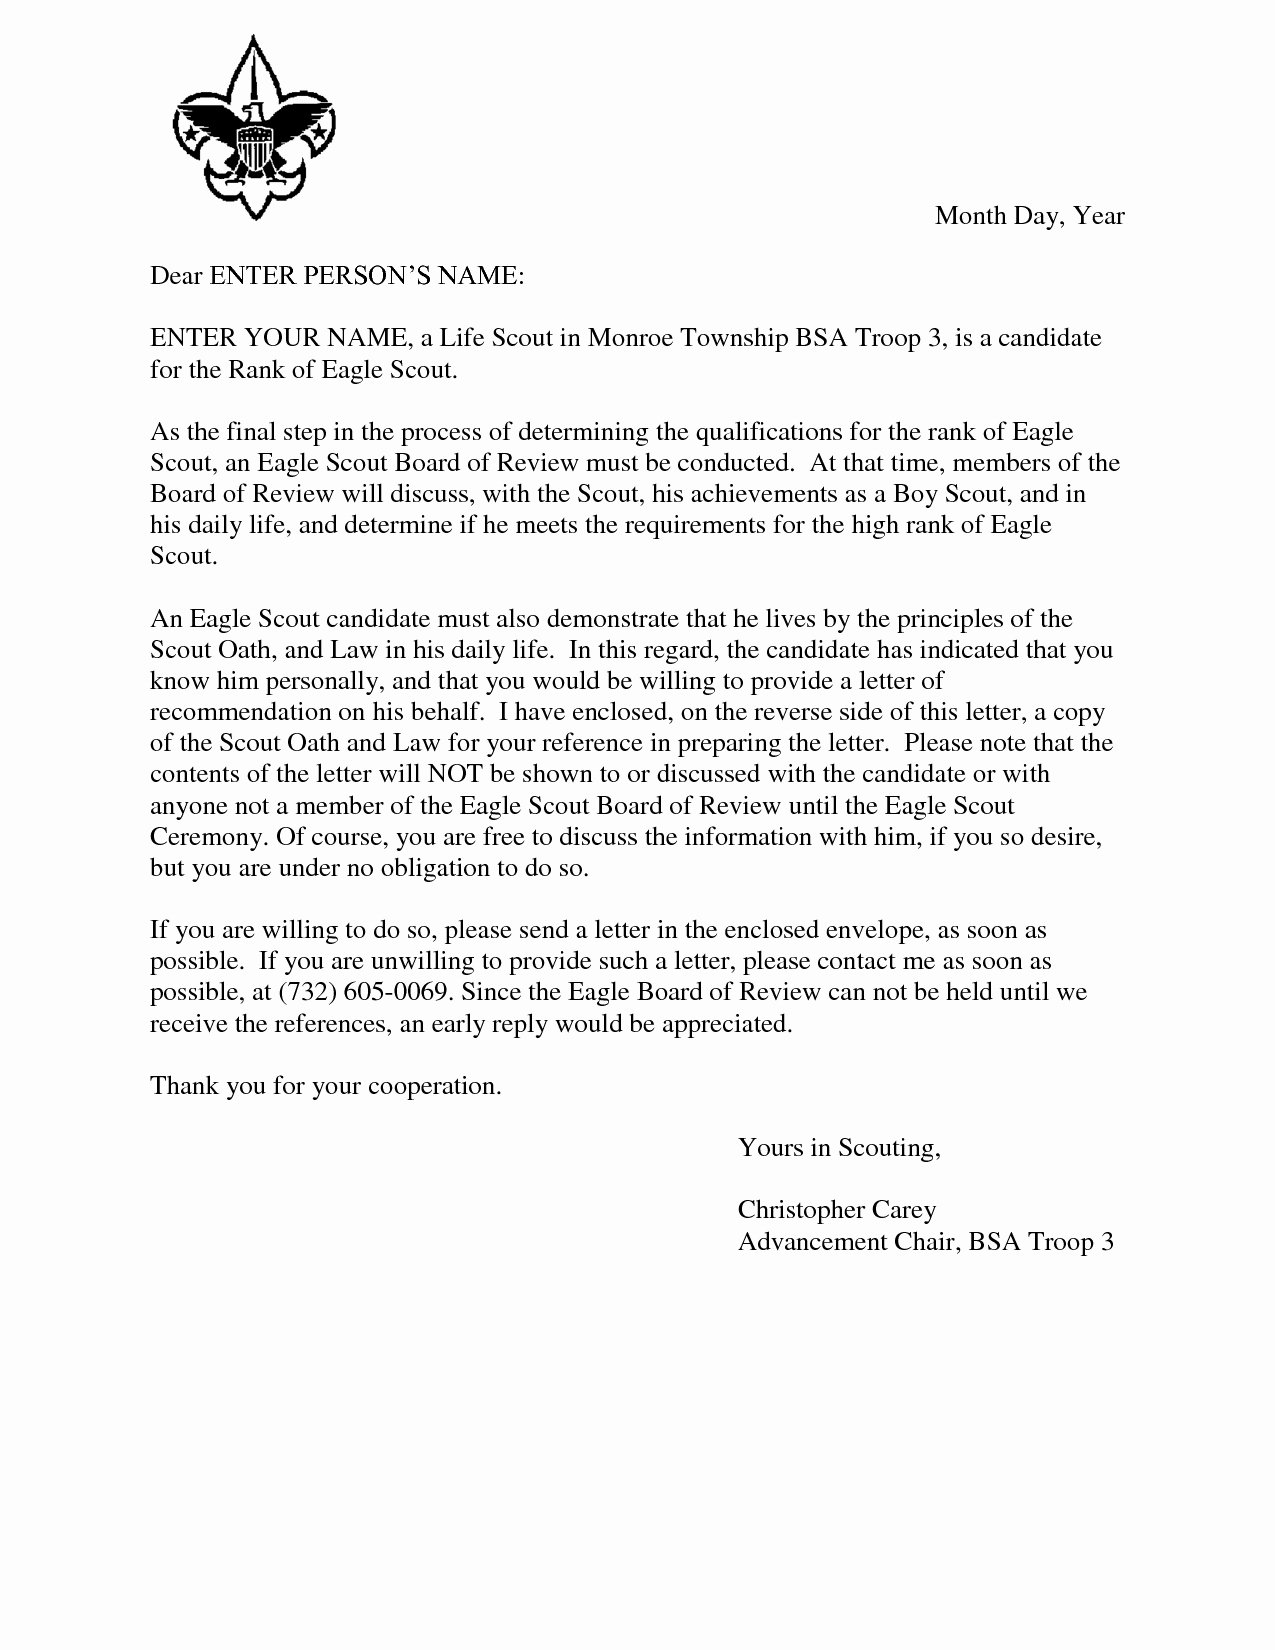 Eagle Scout Recommendation Letter Template Awesome Free Printable Letter Re Mendation Template Examples